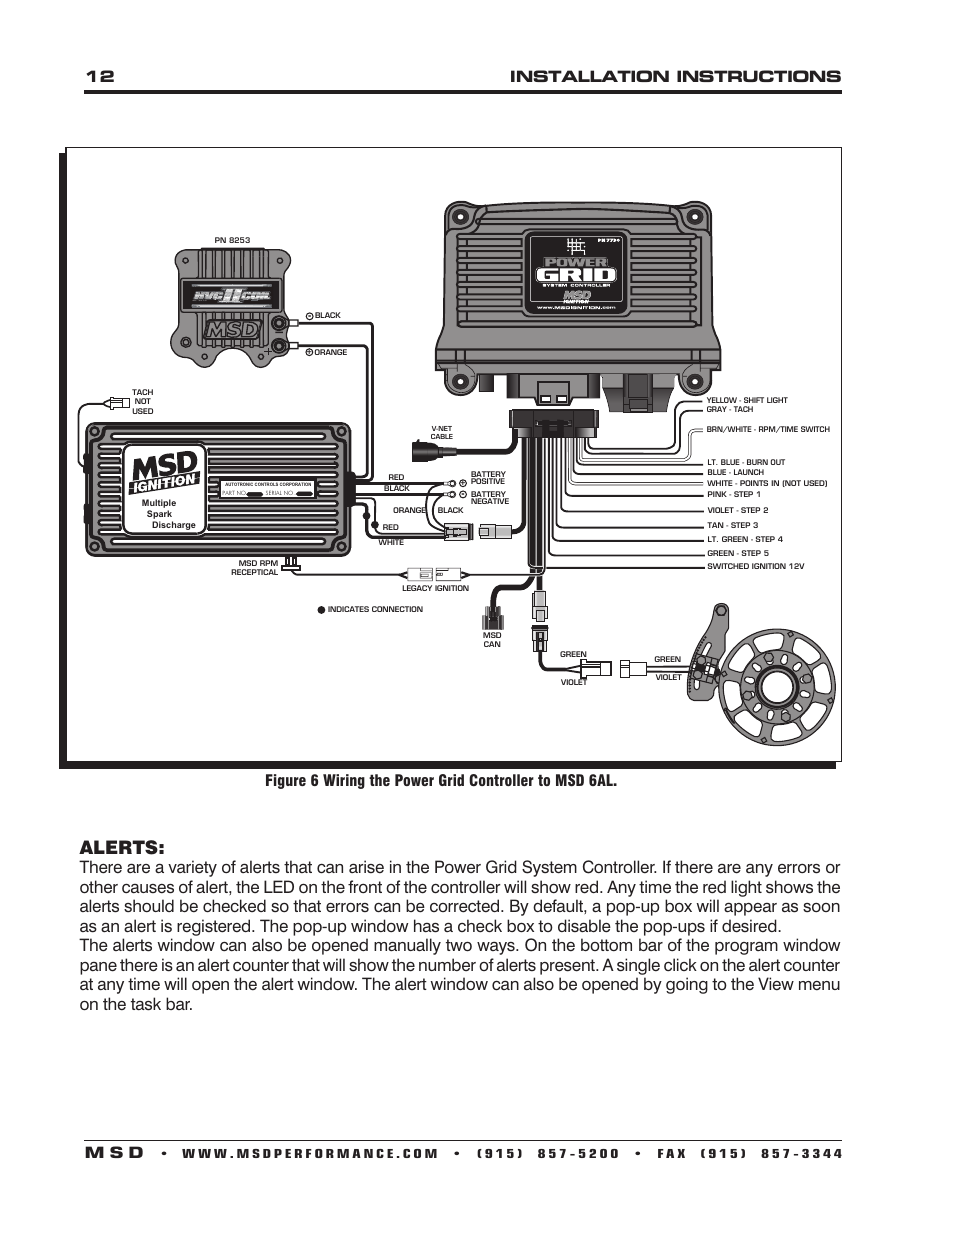 Msd 6al Wiring Diagram System Download Diagrams How To Wire Grid 15 Images For Tach